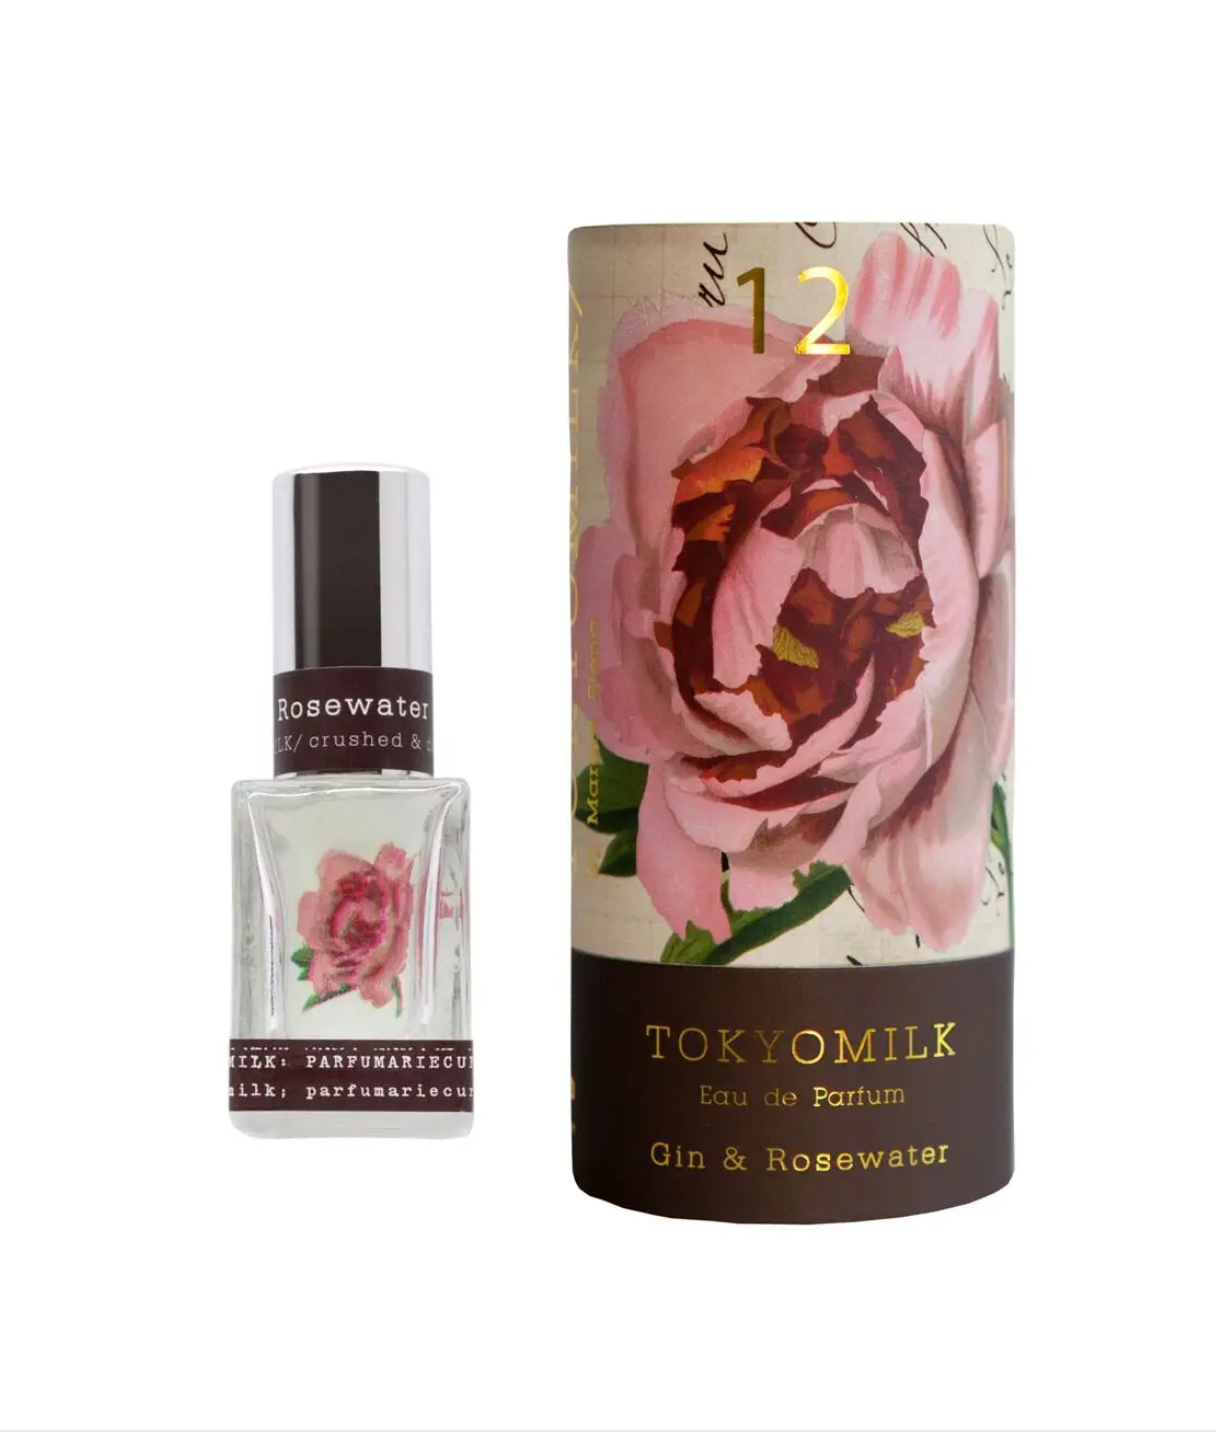 Tokyo Milk Gin and Rosewater No. 12 Parfum- Boxed